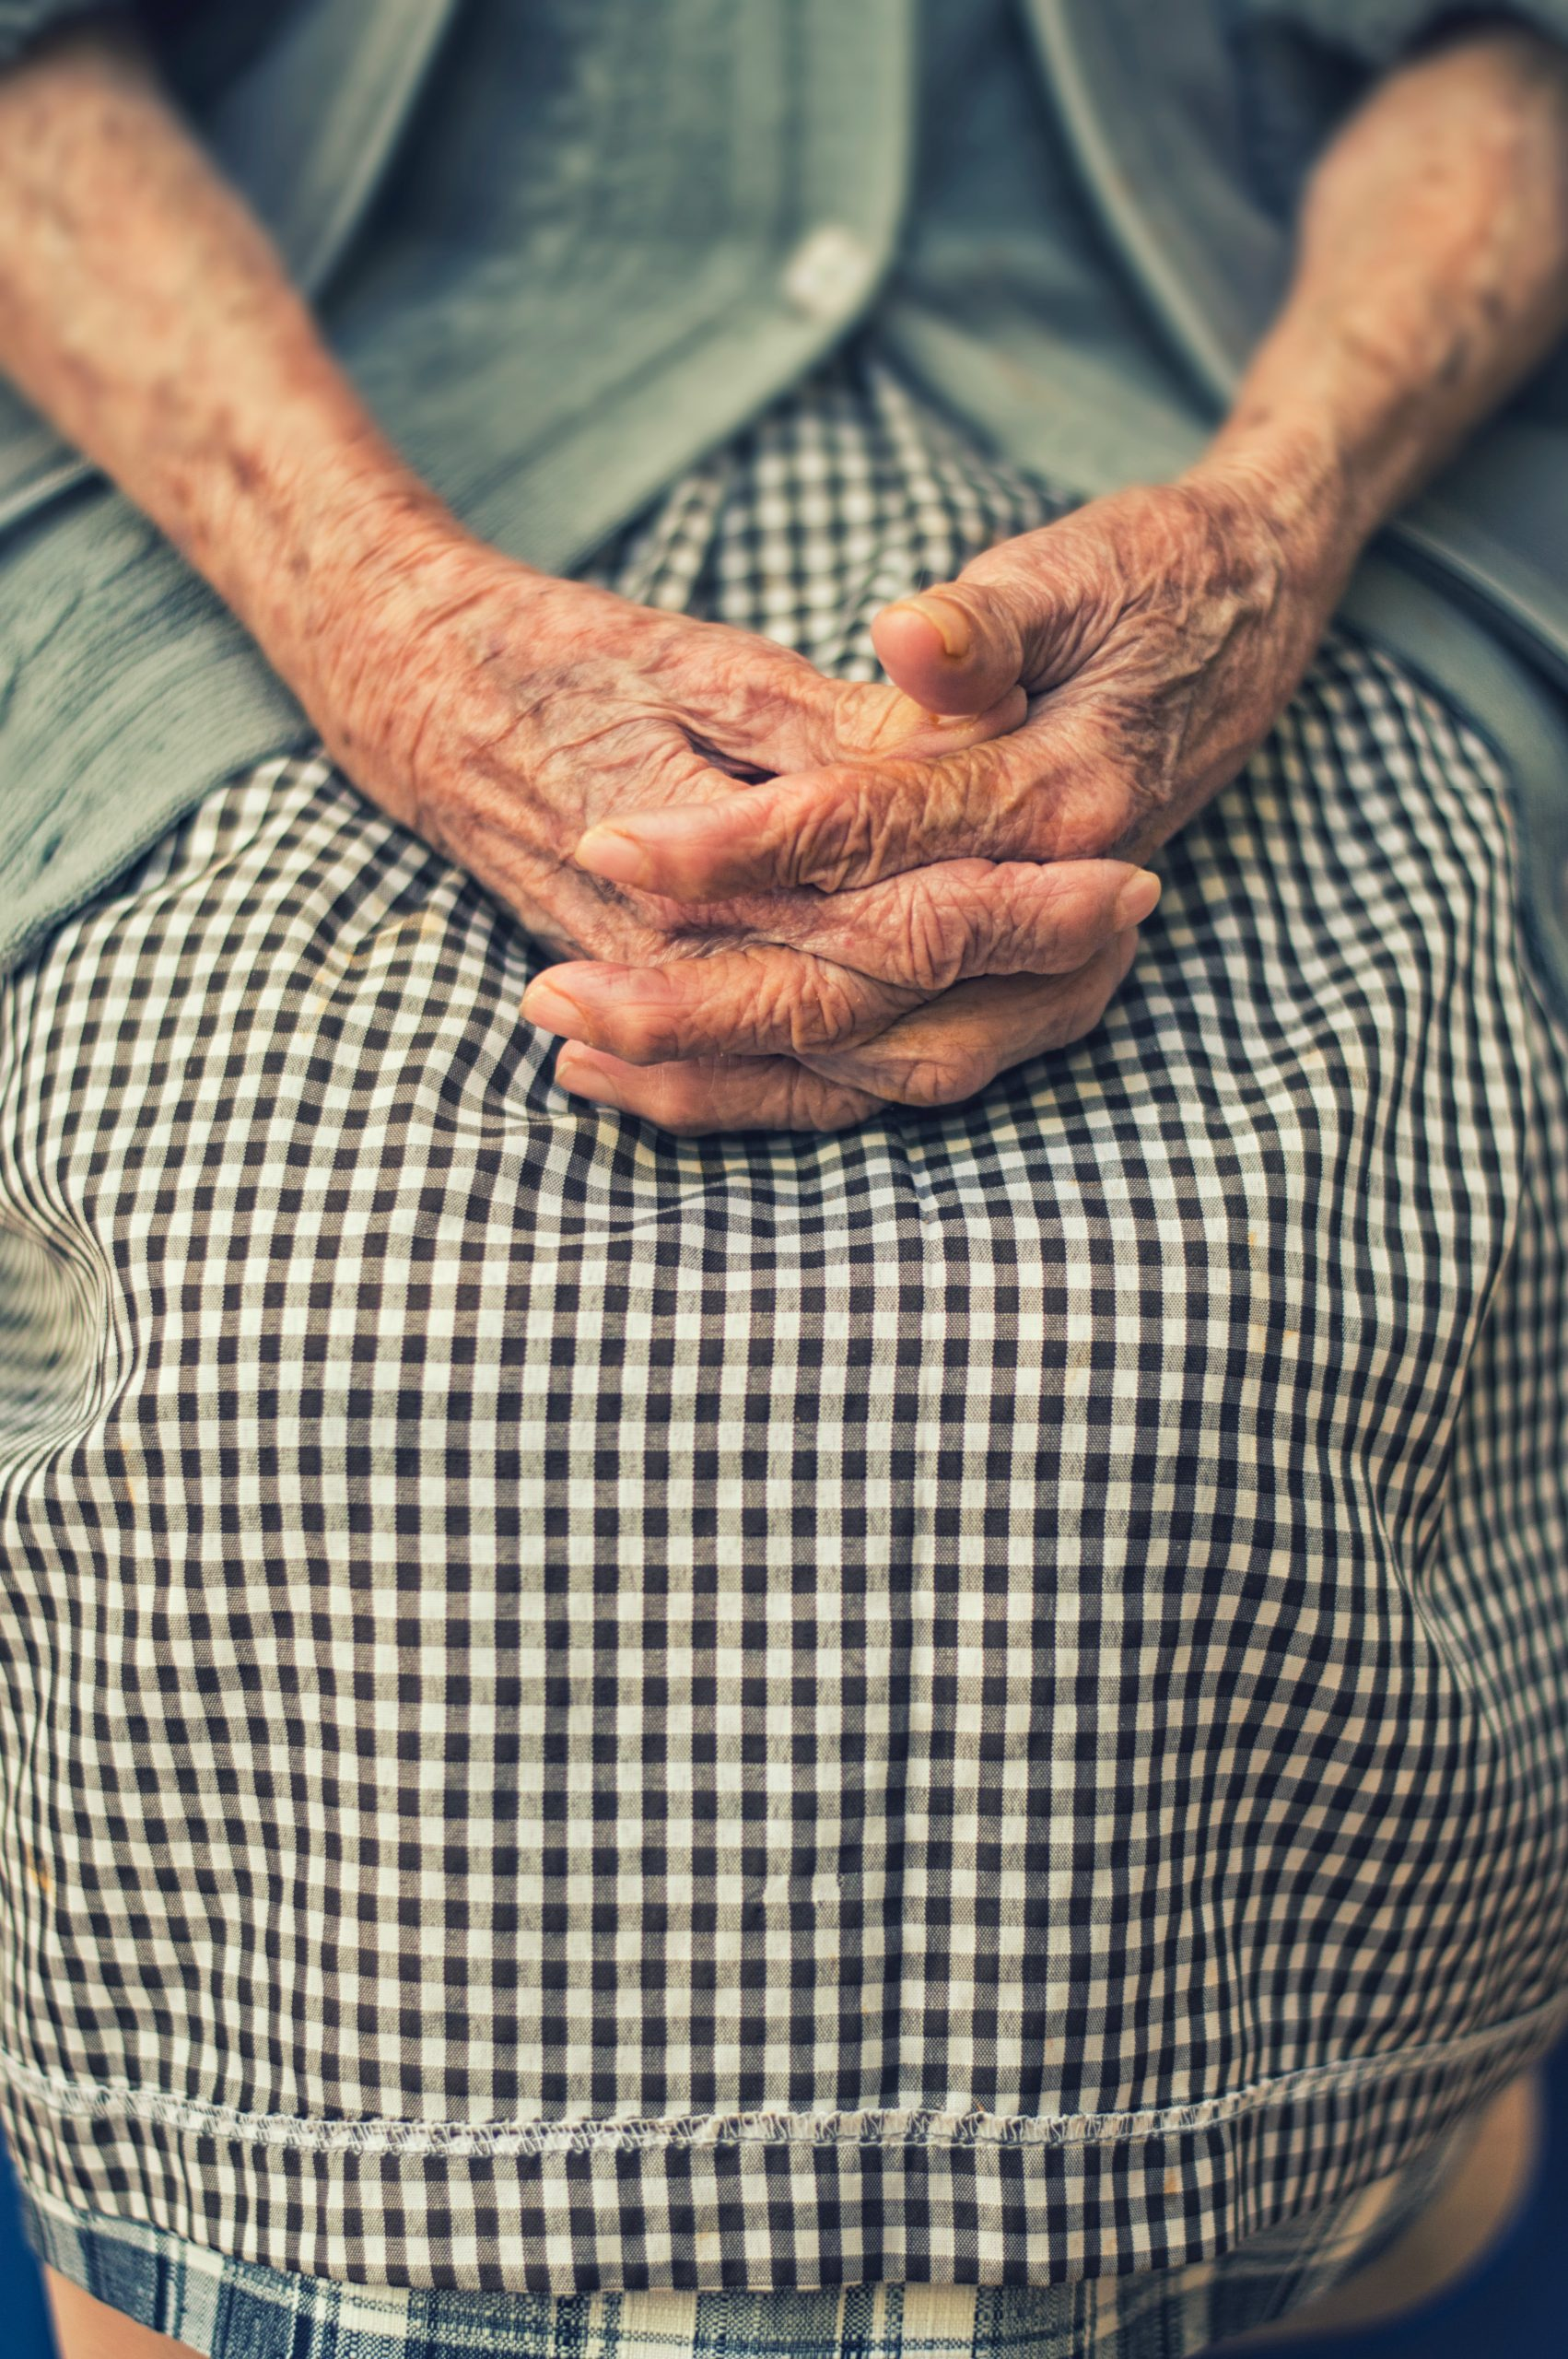 VRK-1 and AMPK anti aging enzymes can increase lifespan